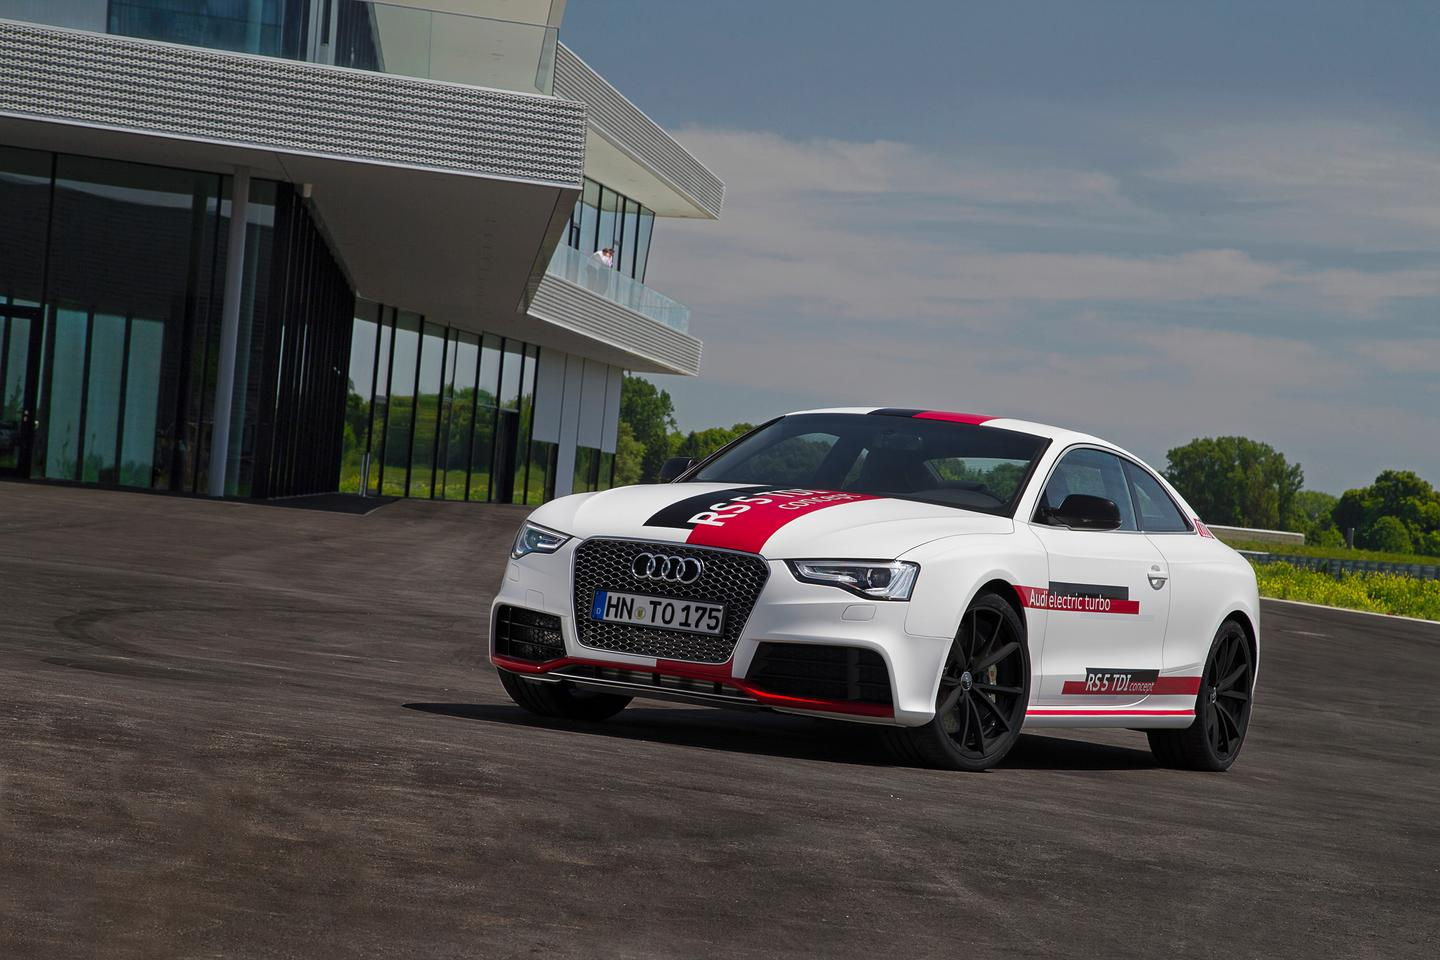 The RS 5 concept's three turbos combine for 385 hp and 553 lb-ft